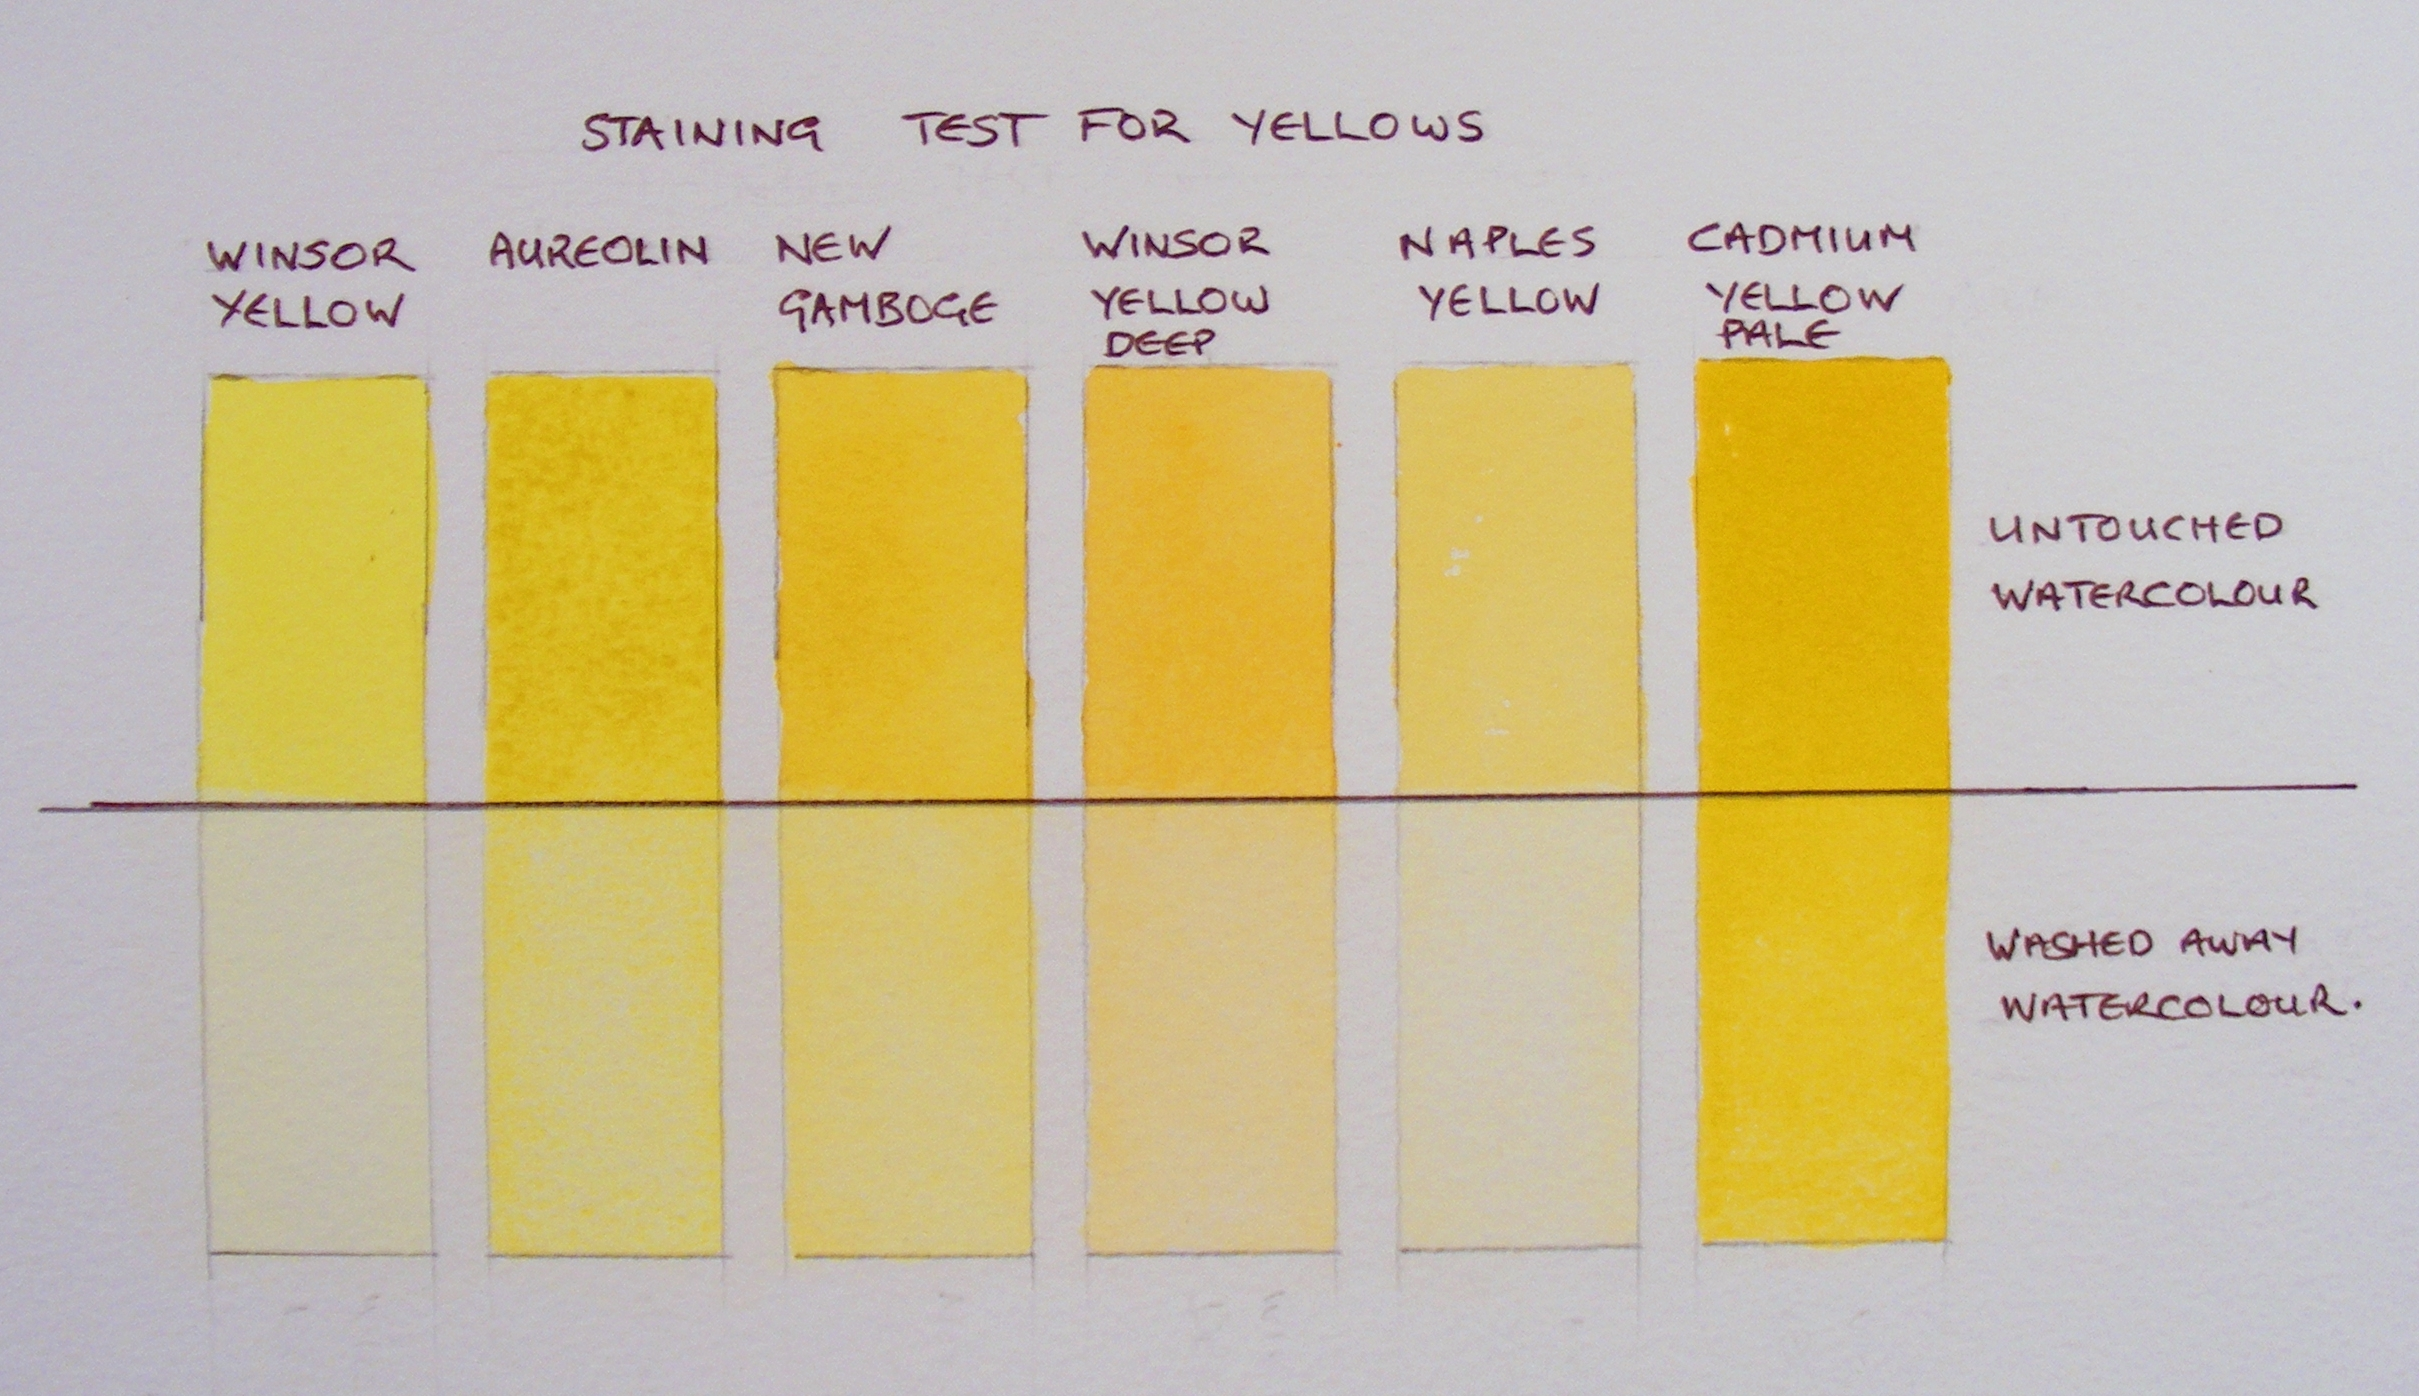 Staining Test for Yellows.JPG